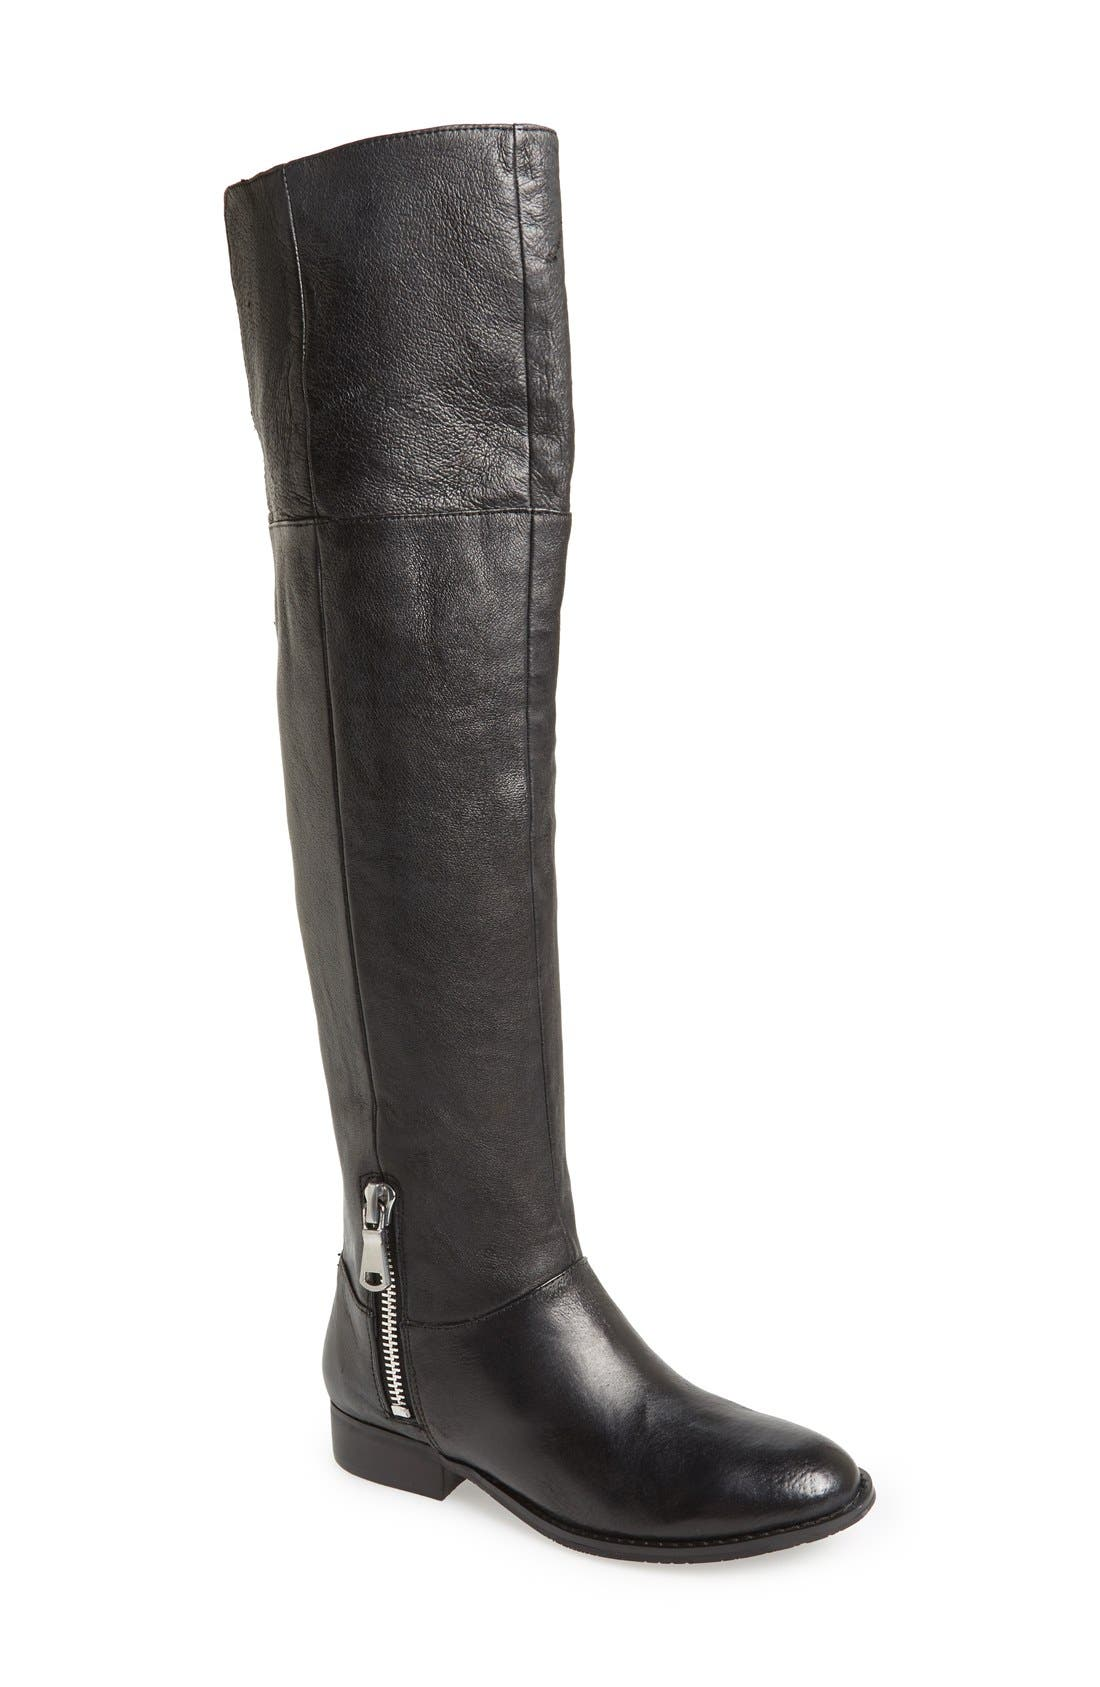 CHINESE LAUNDRY, 'Fawn' Leather Riding Boot, Main thumbnail 1, color, 001